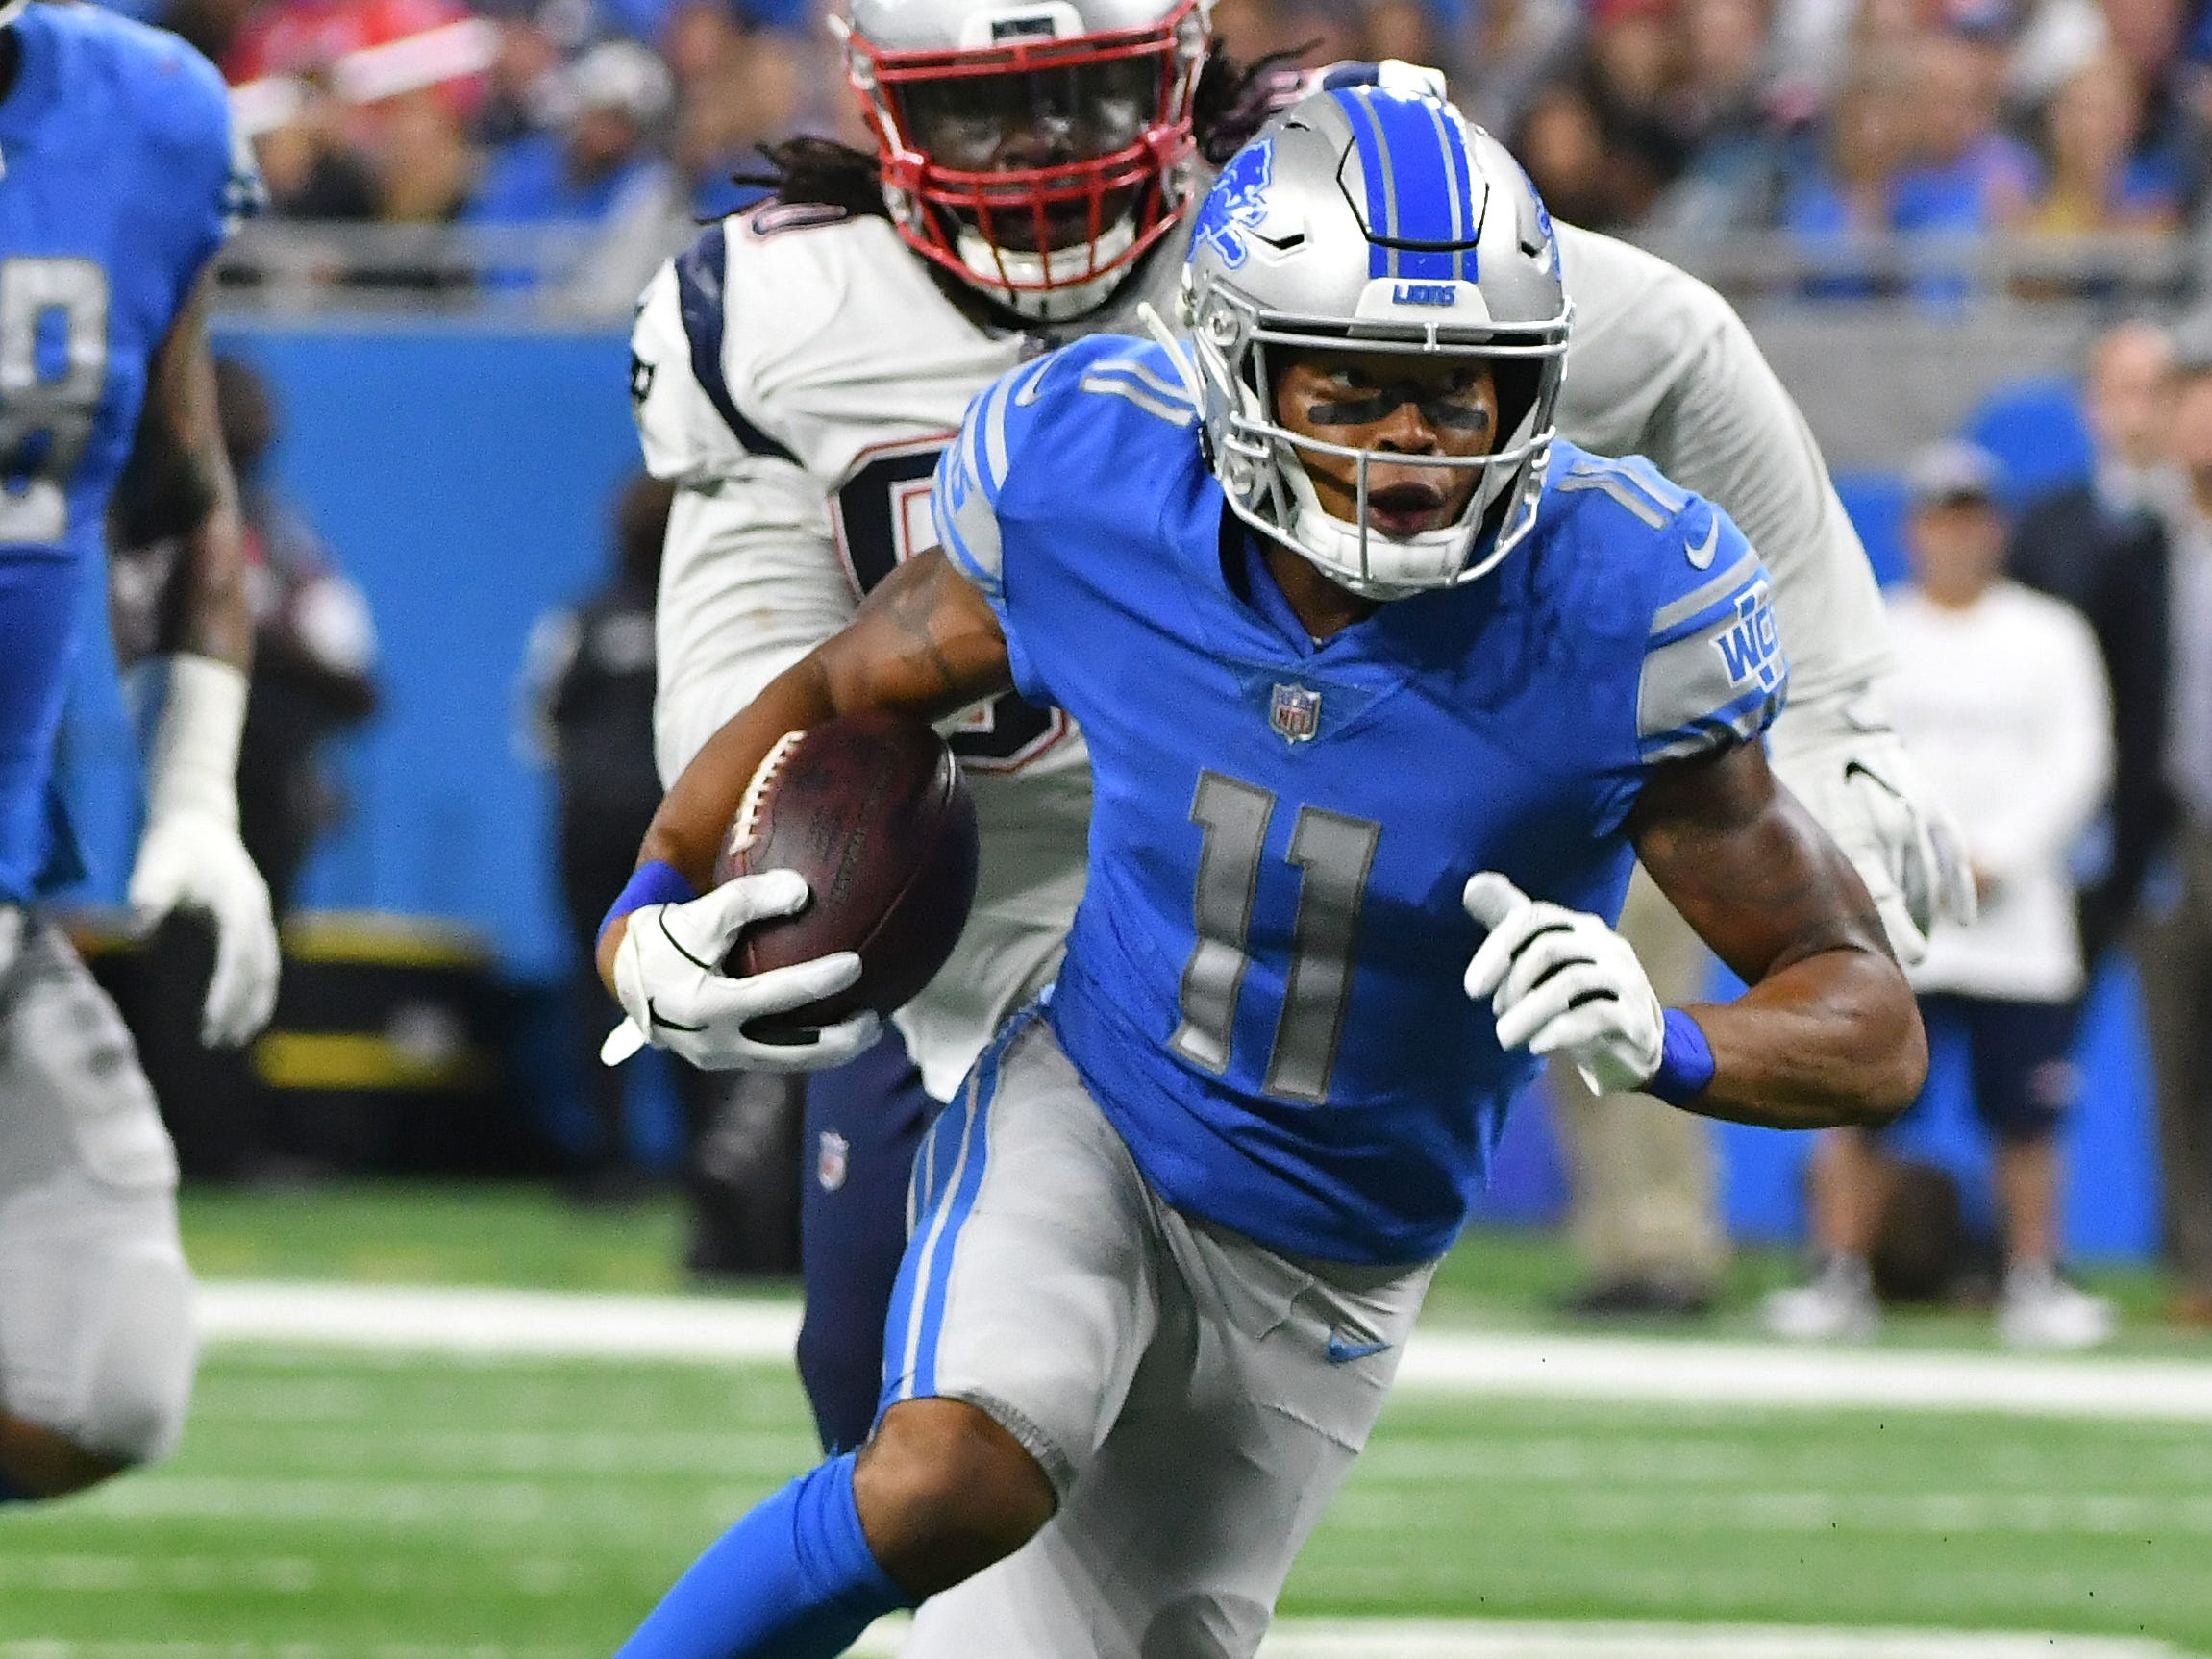 WR Marvin Jones: If Matthew Stafford didn't miss him in the end zone multiple times early in the season, Jones' stat line would look more impressive. As it stands, he still leads the team with five touchdowns. And his recent stretch has put him back on pace for a 900-yard season. It will be interesting to see how Golden Tate's absence impacts Jones' production down the stretch. Grade: B+